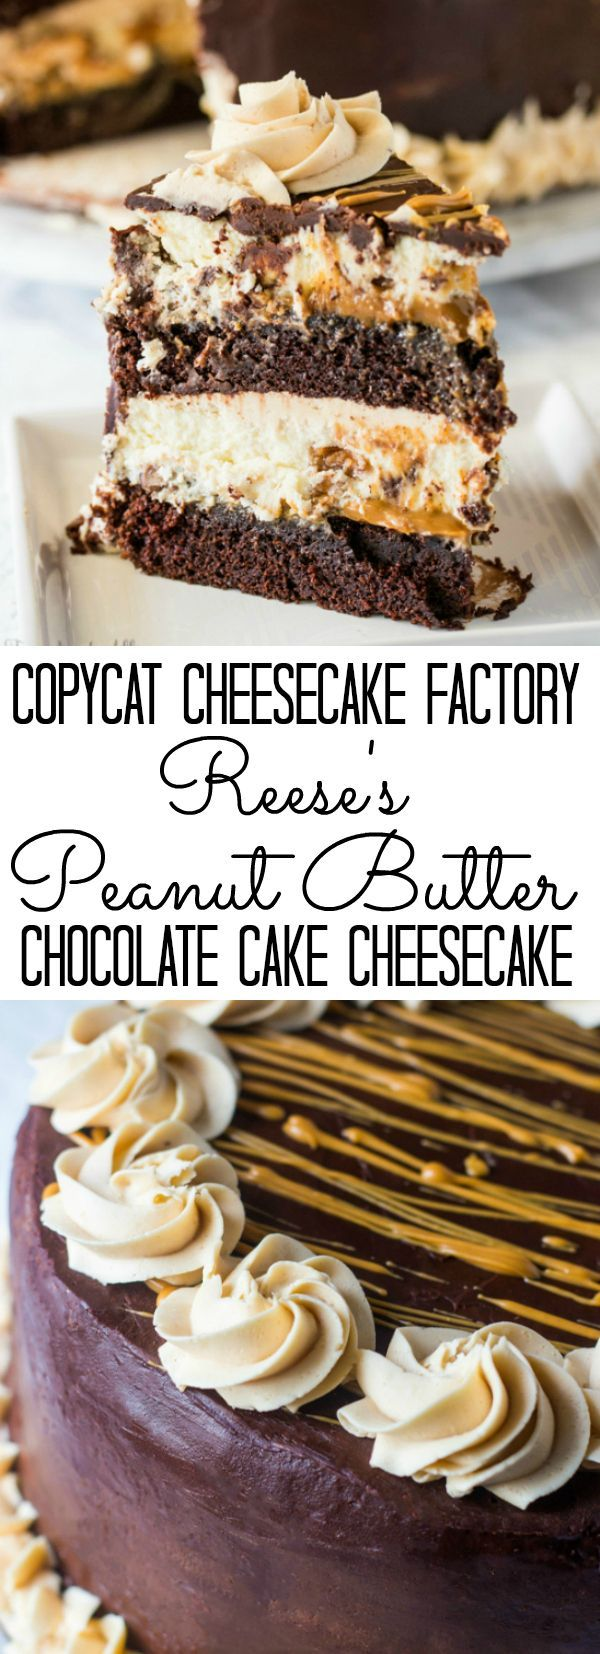 Delicious layers of moist chocolate cake, Reese's cheesecake, caramel and peanut butter make up this Copycat Cheesecake Factory Reese's Peanut Butter Chocolate Cake Cheesecake. More